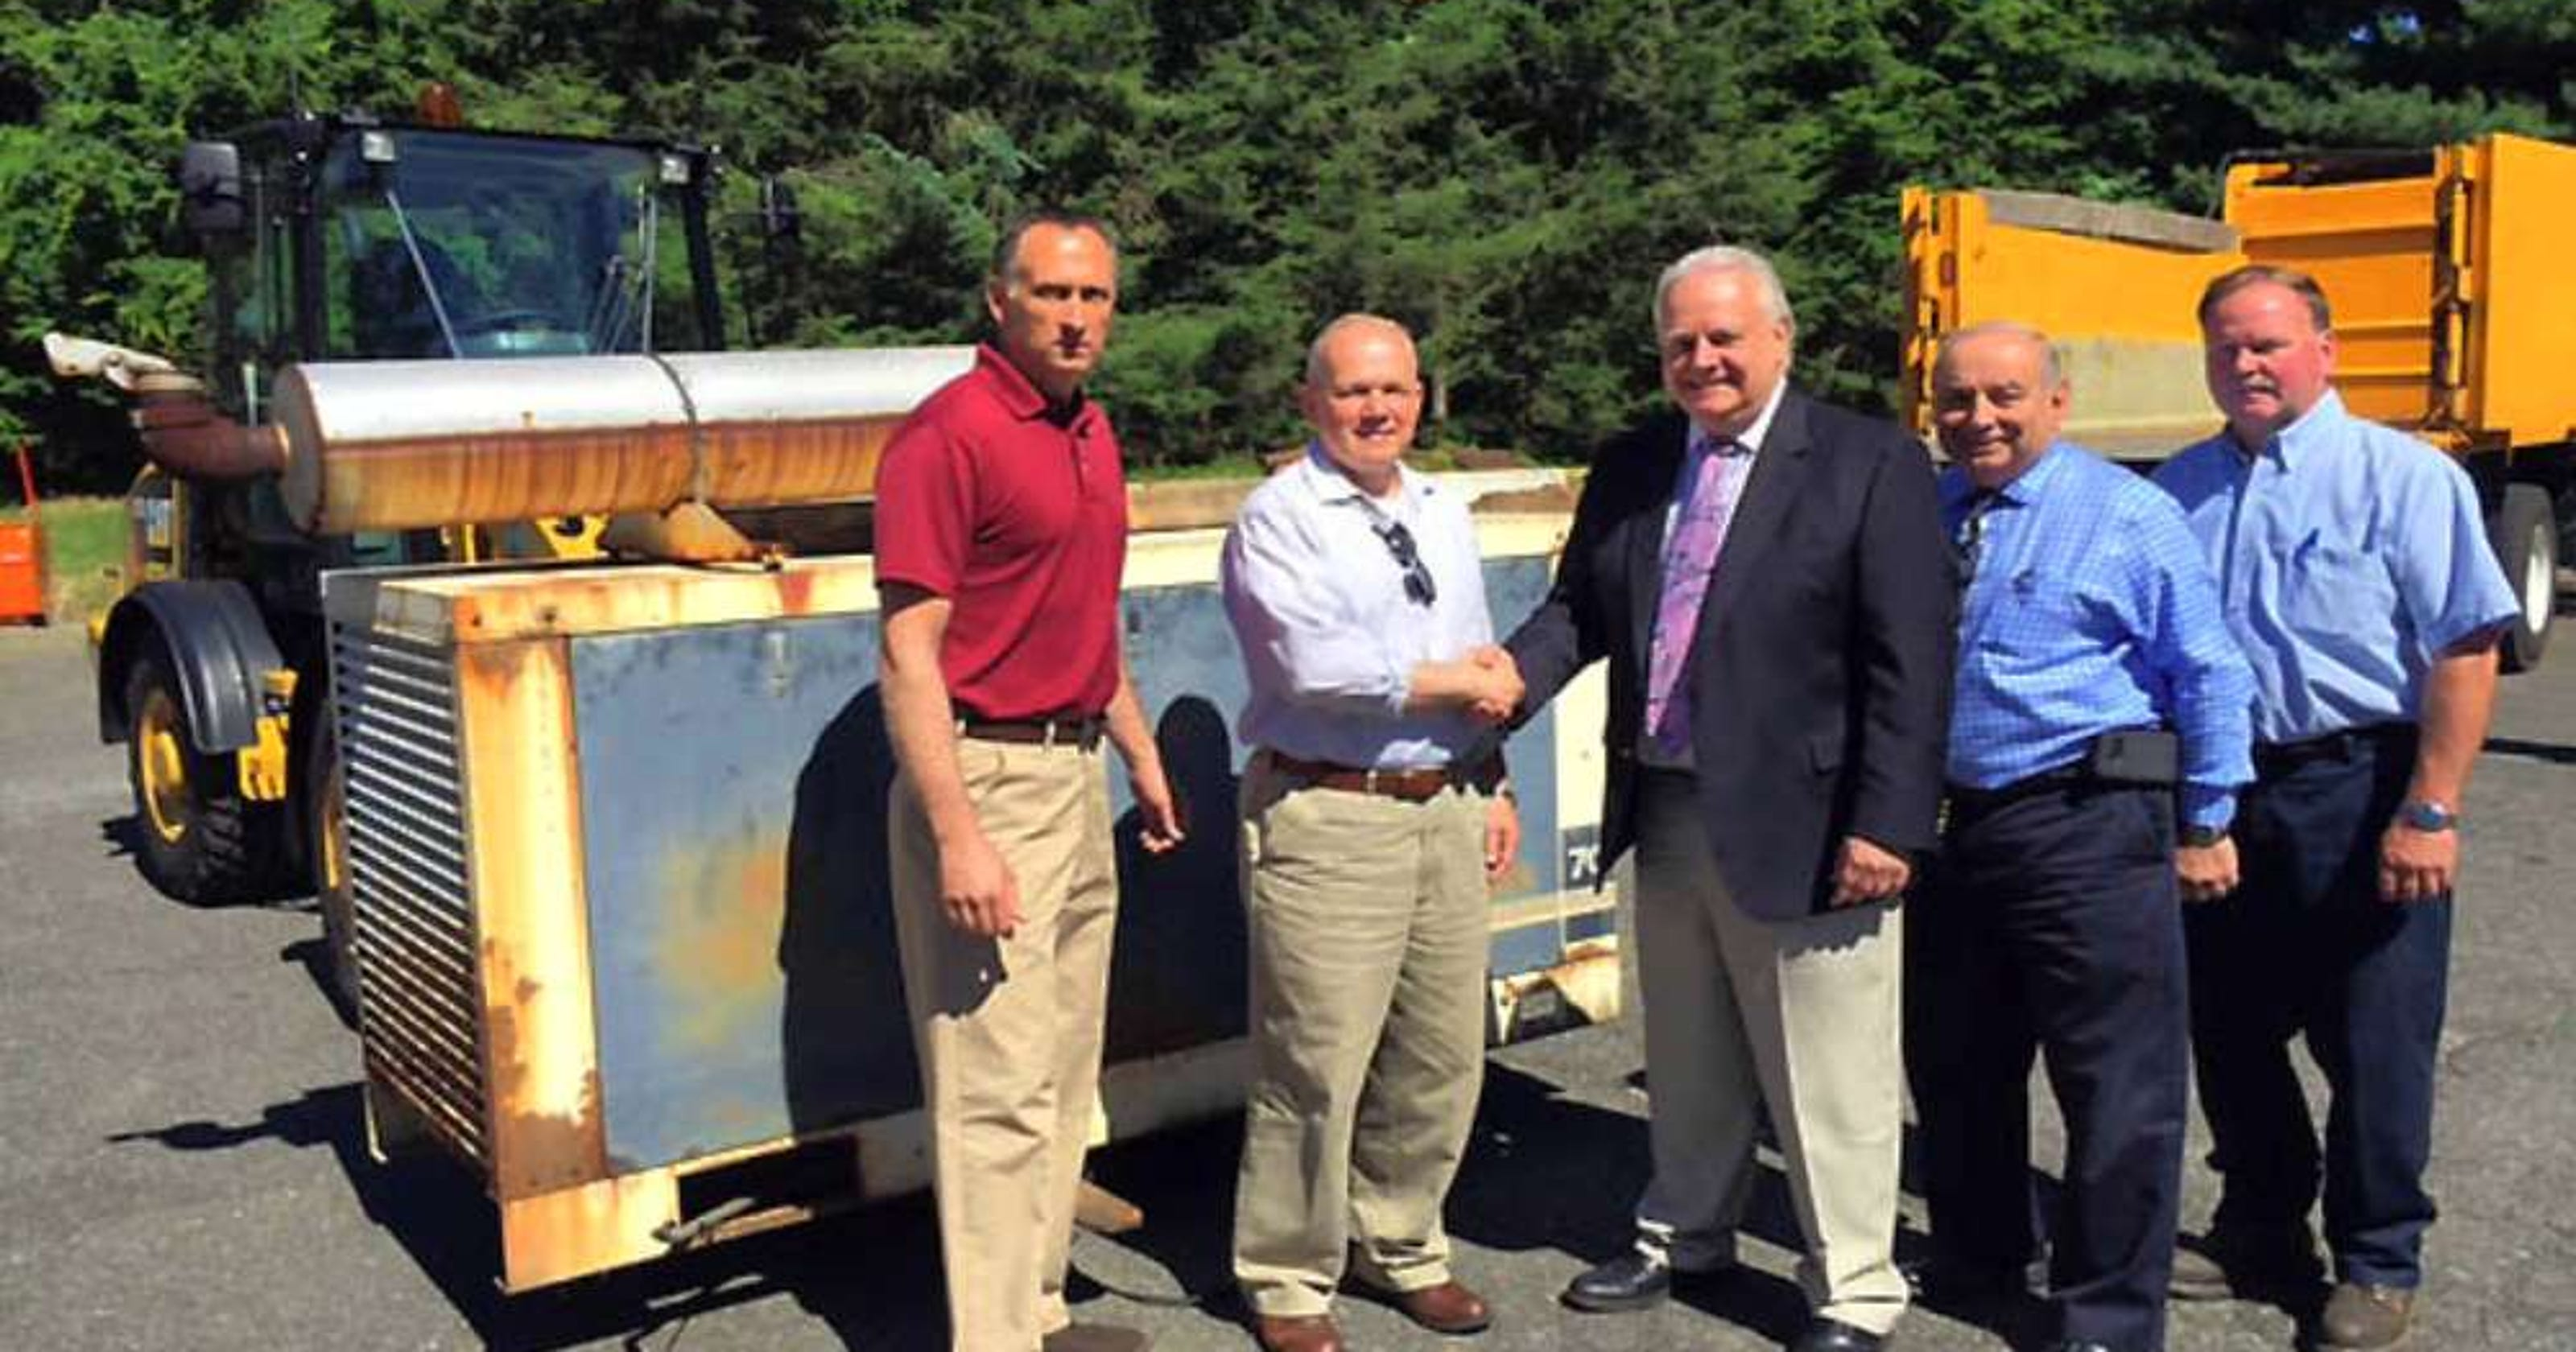 Saddle River town officials find good home for generator